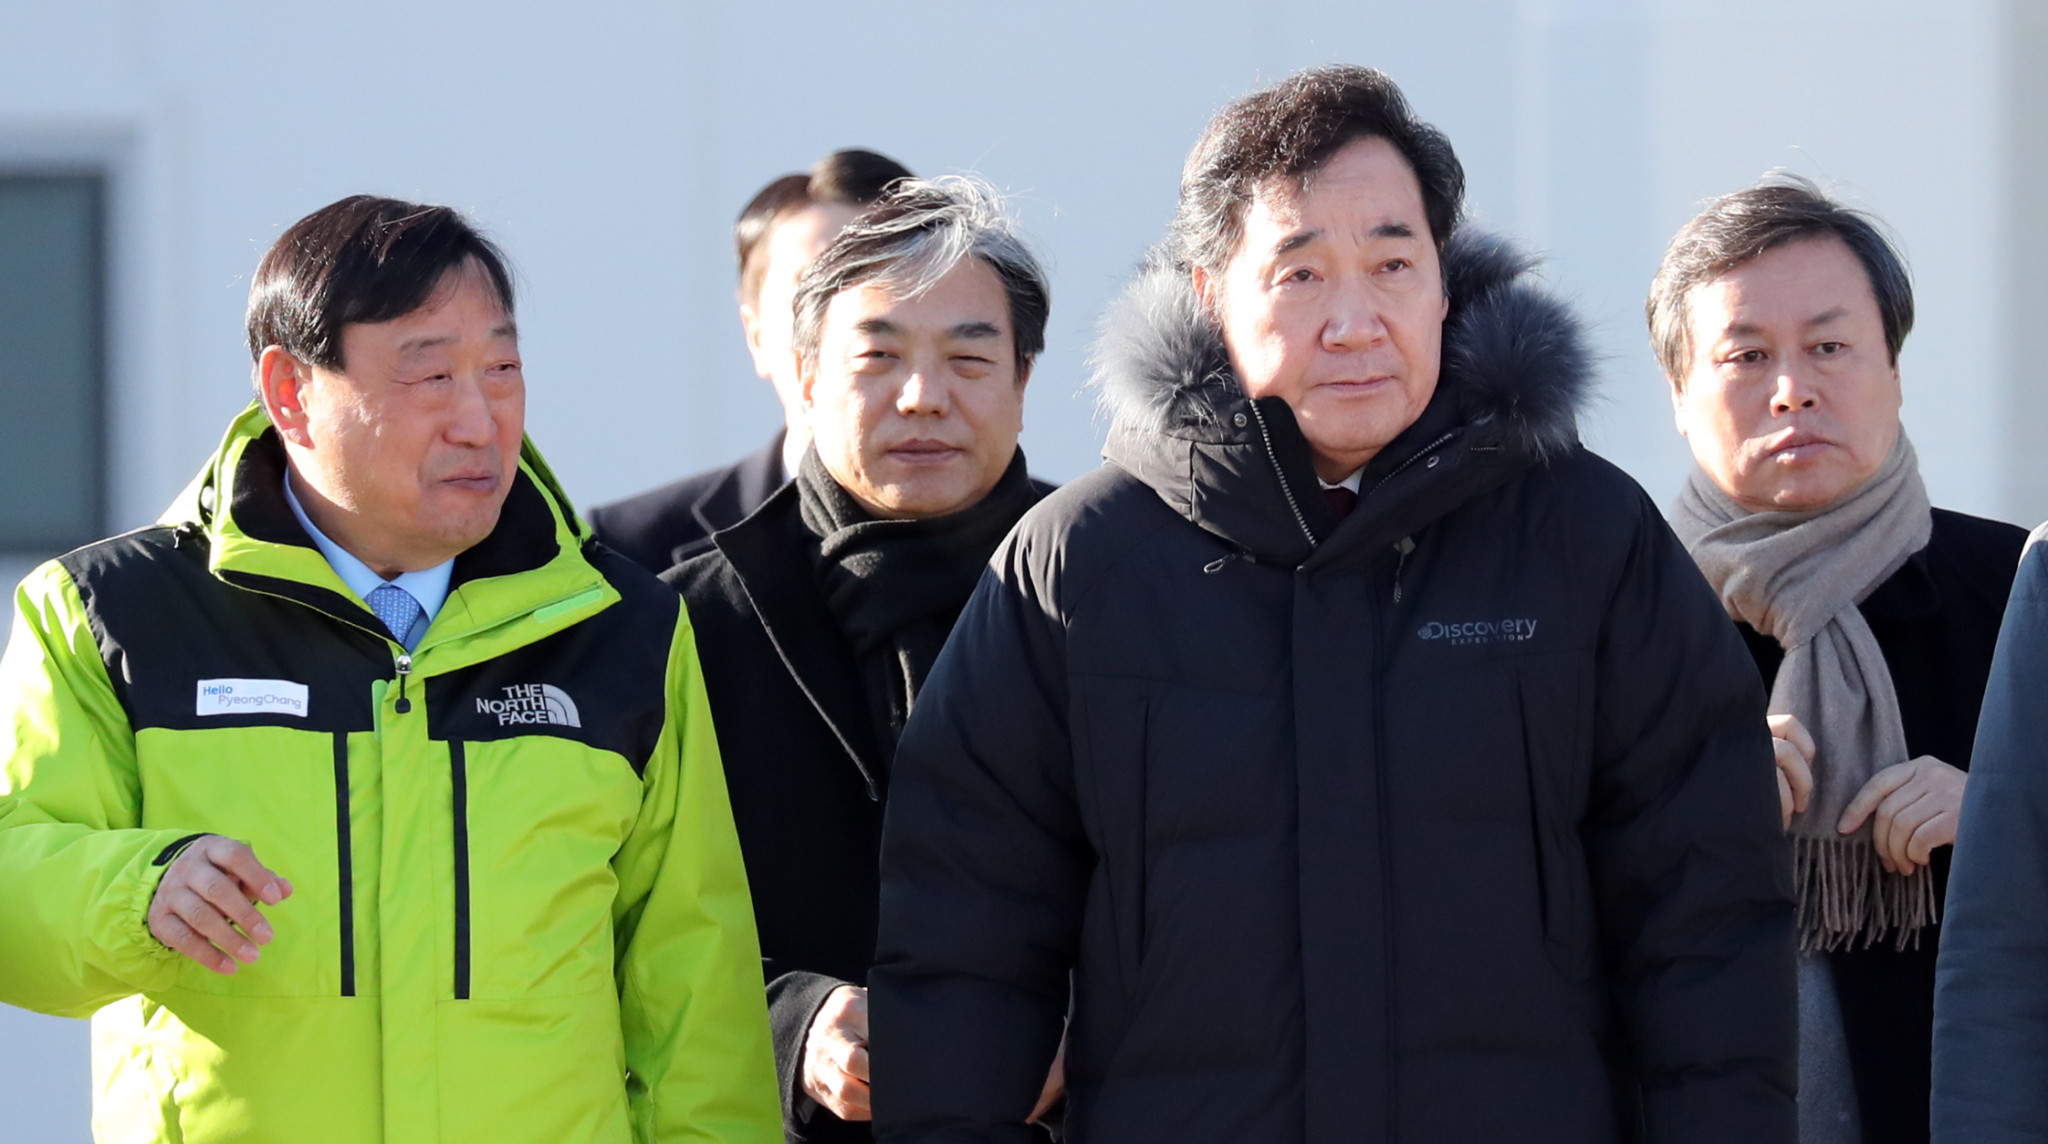 South Korea's Prime Minister Lee Nak-Yeon, centre right, pictured with Pyeongchang 2018 President Lee Hye-beom during his inspection visit ©Pyeongchang 2018